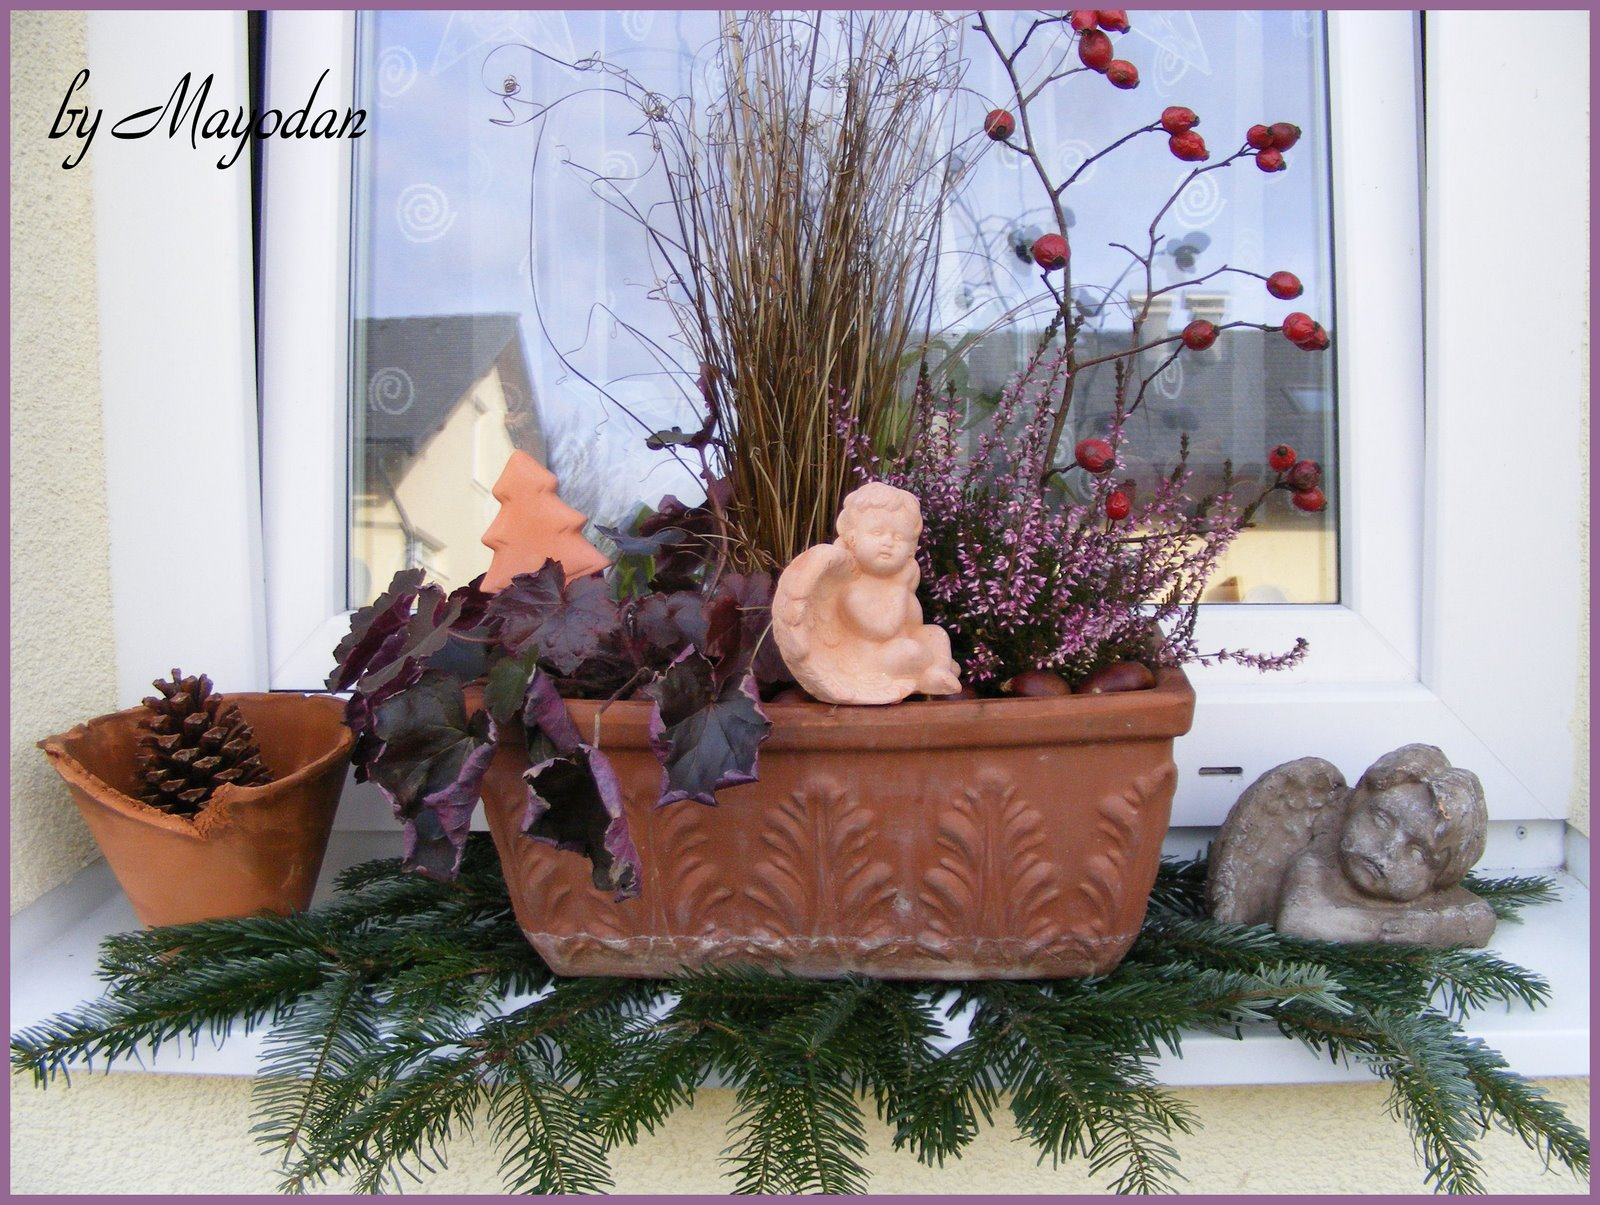 Mayodans garden & crafts: ~**~ erster advent ~**~